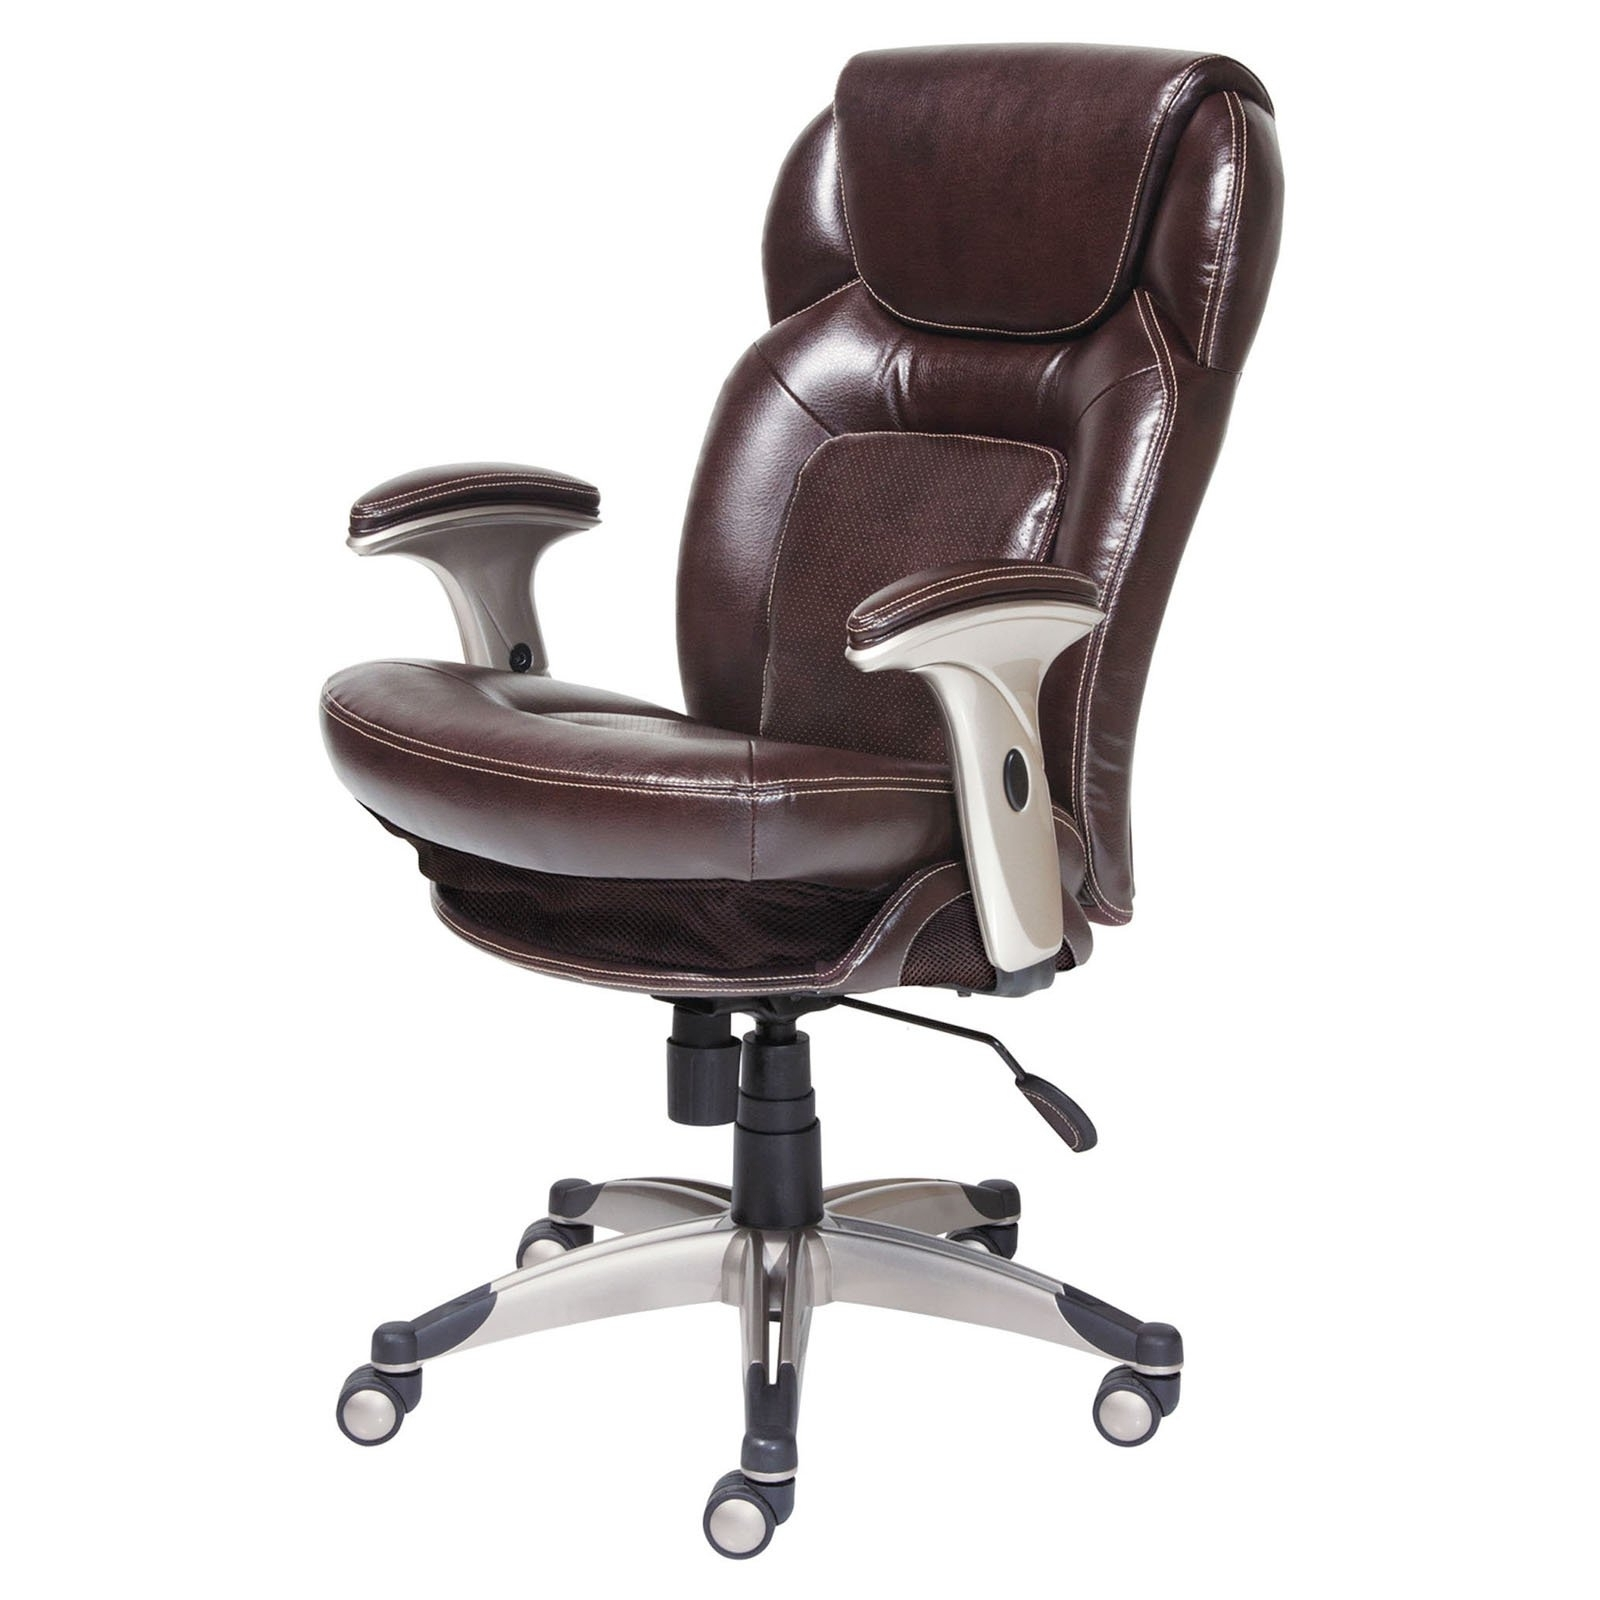 Widely Used Lane Executive Office Chairs Within Serta Air Health & Wellness Eco Friendly Bonded Leather Executive (View 17 of 20)